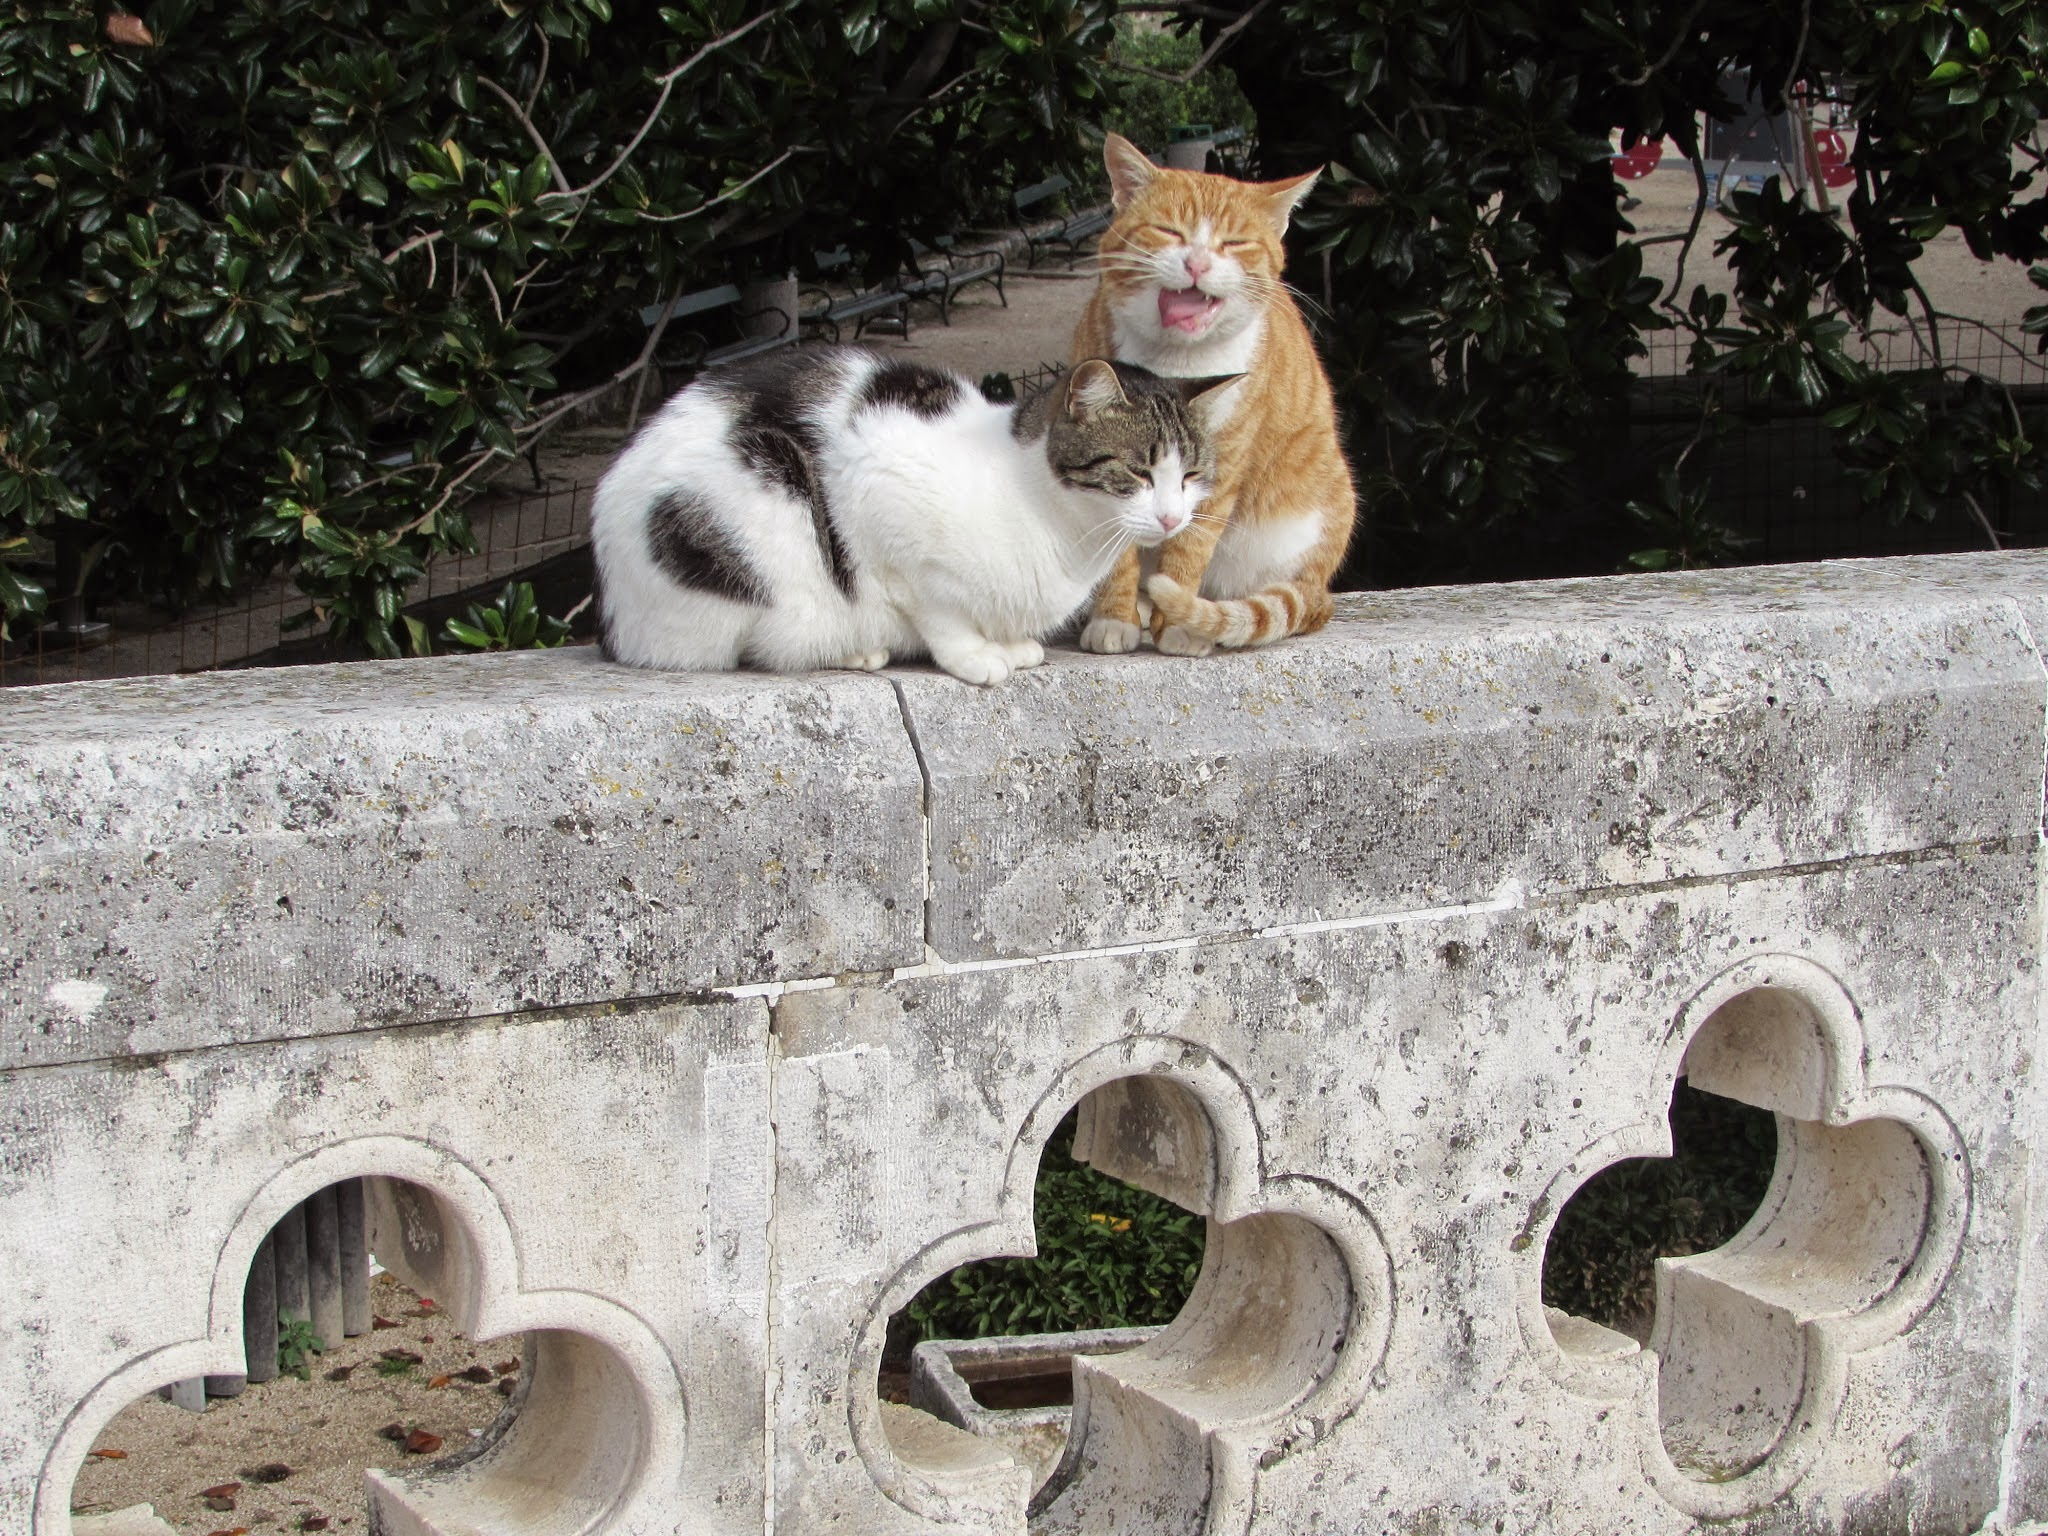 Dubrovnik in particular seemed to have a cat or two around every corner.